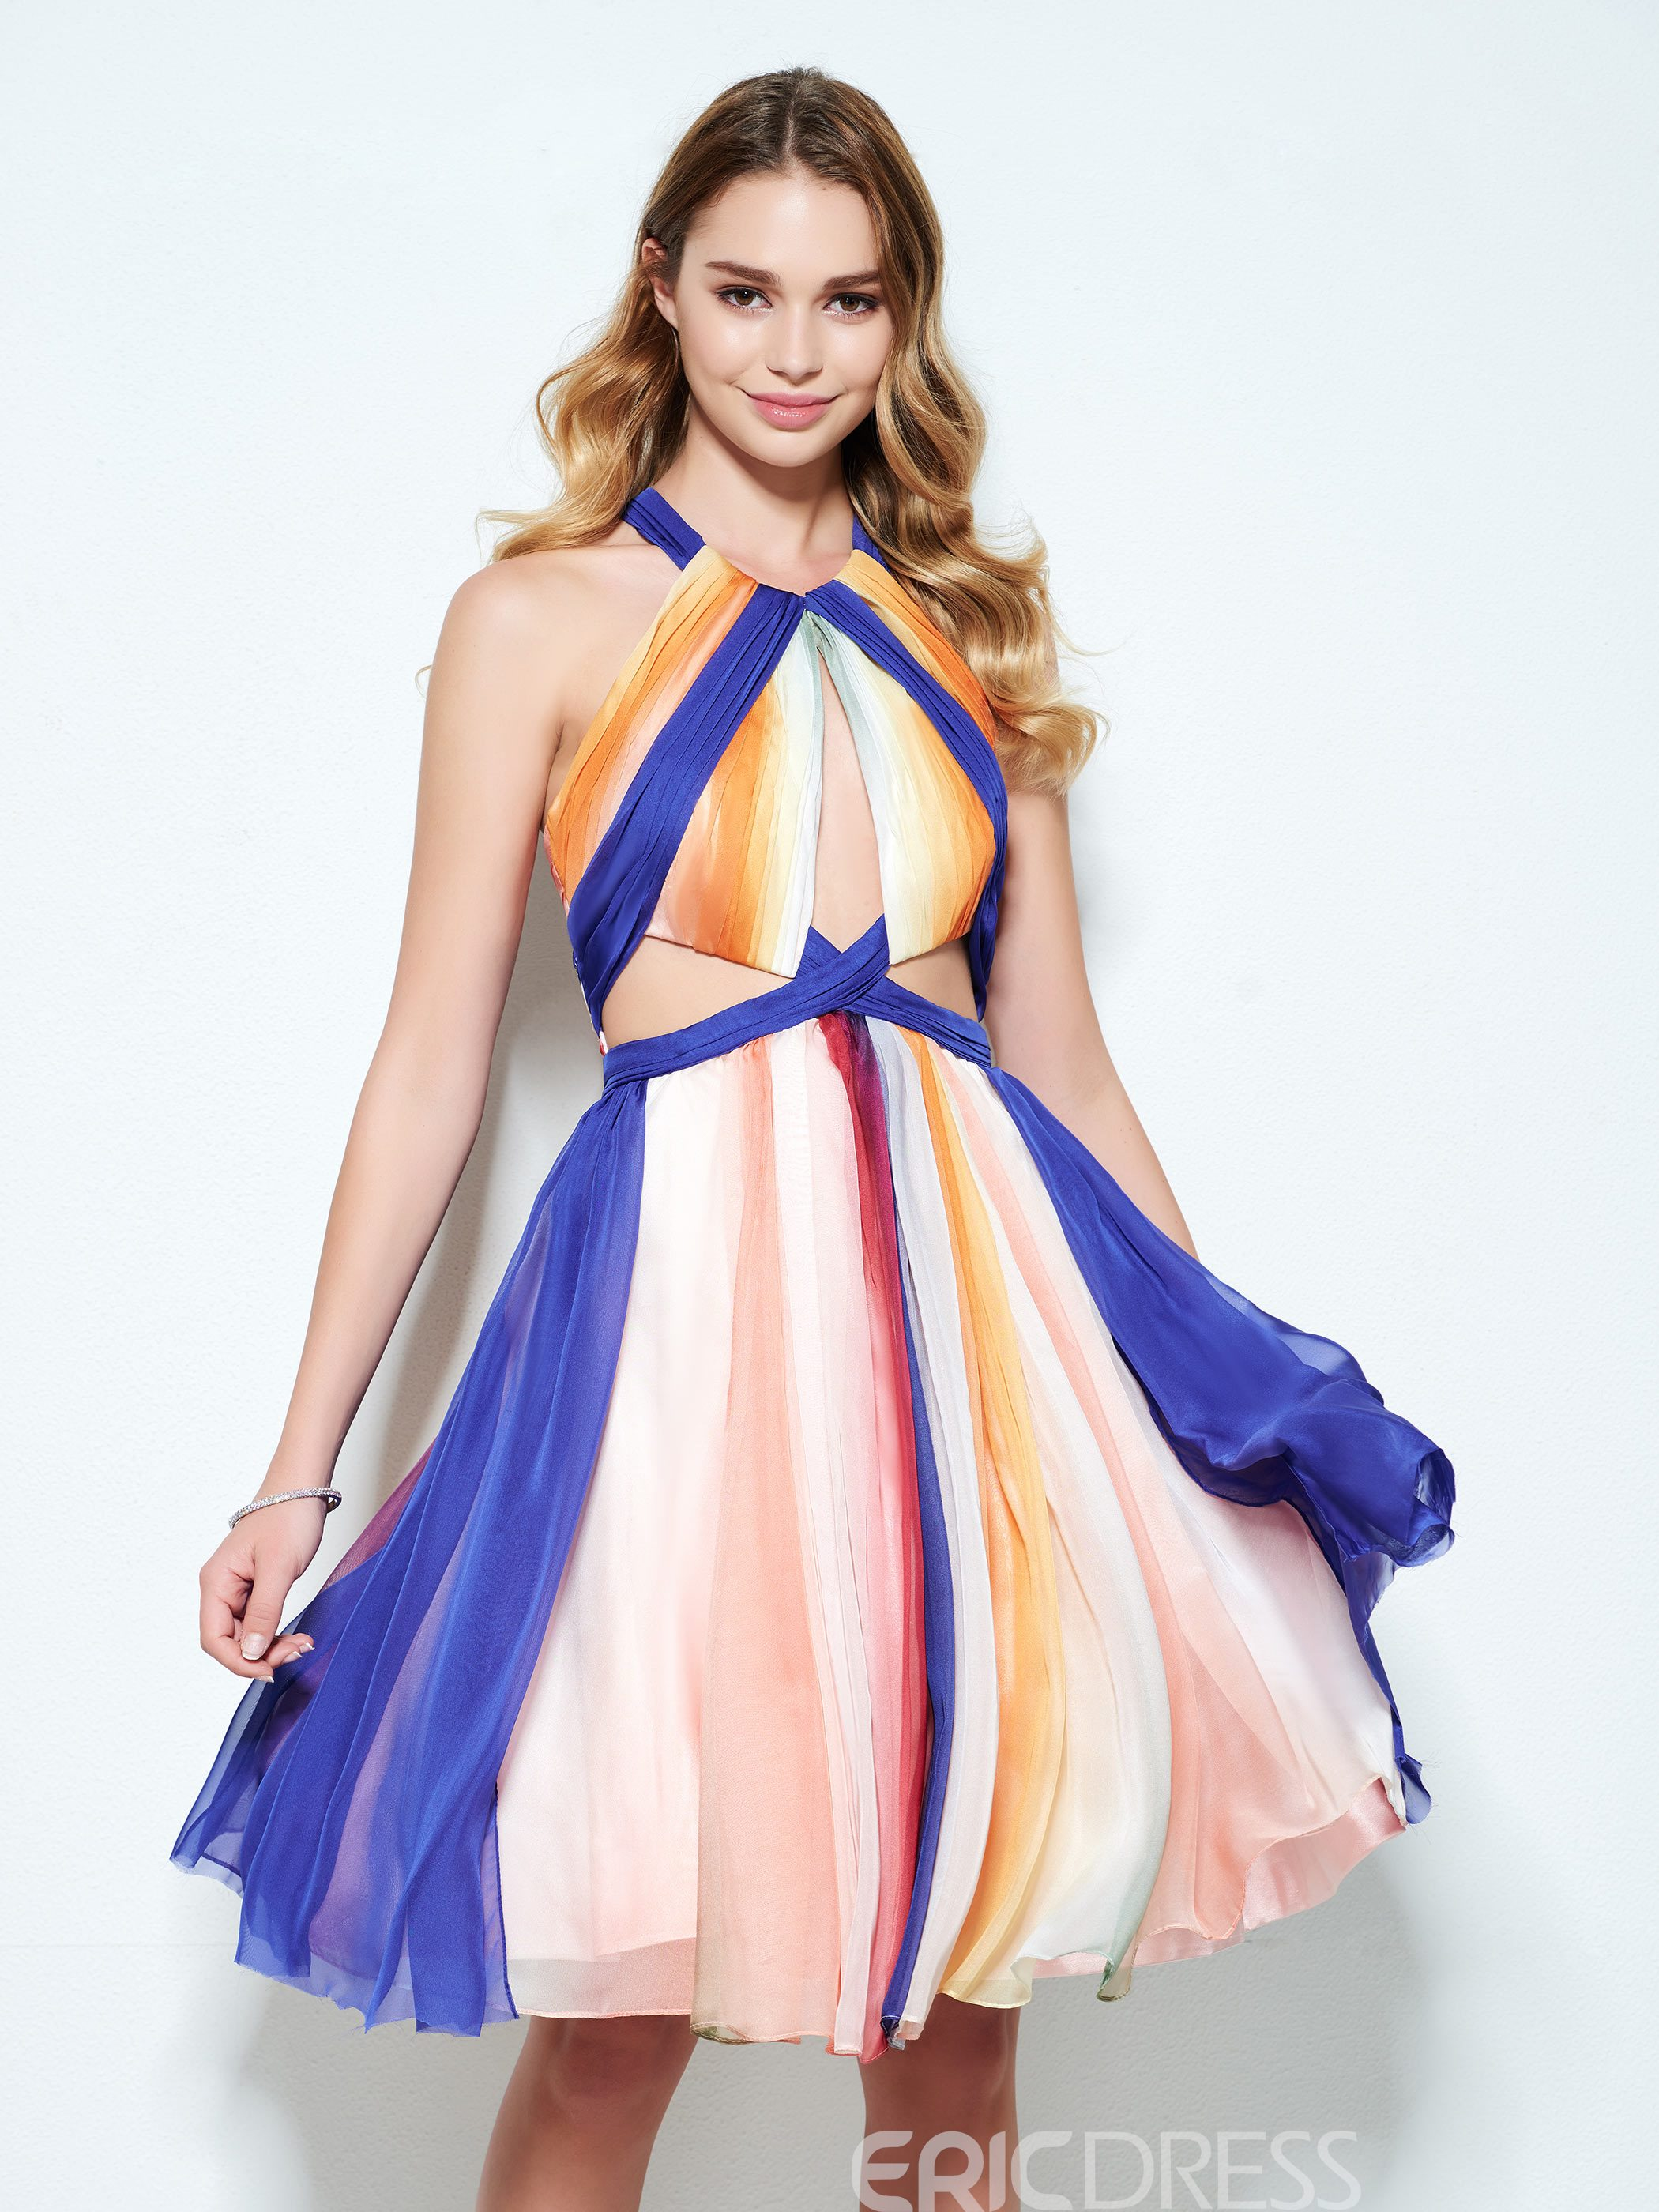 Ericdress A-Line Halter Pleats Knee-Length Homecoming Dress